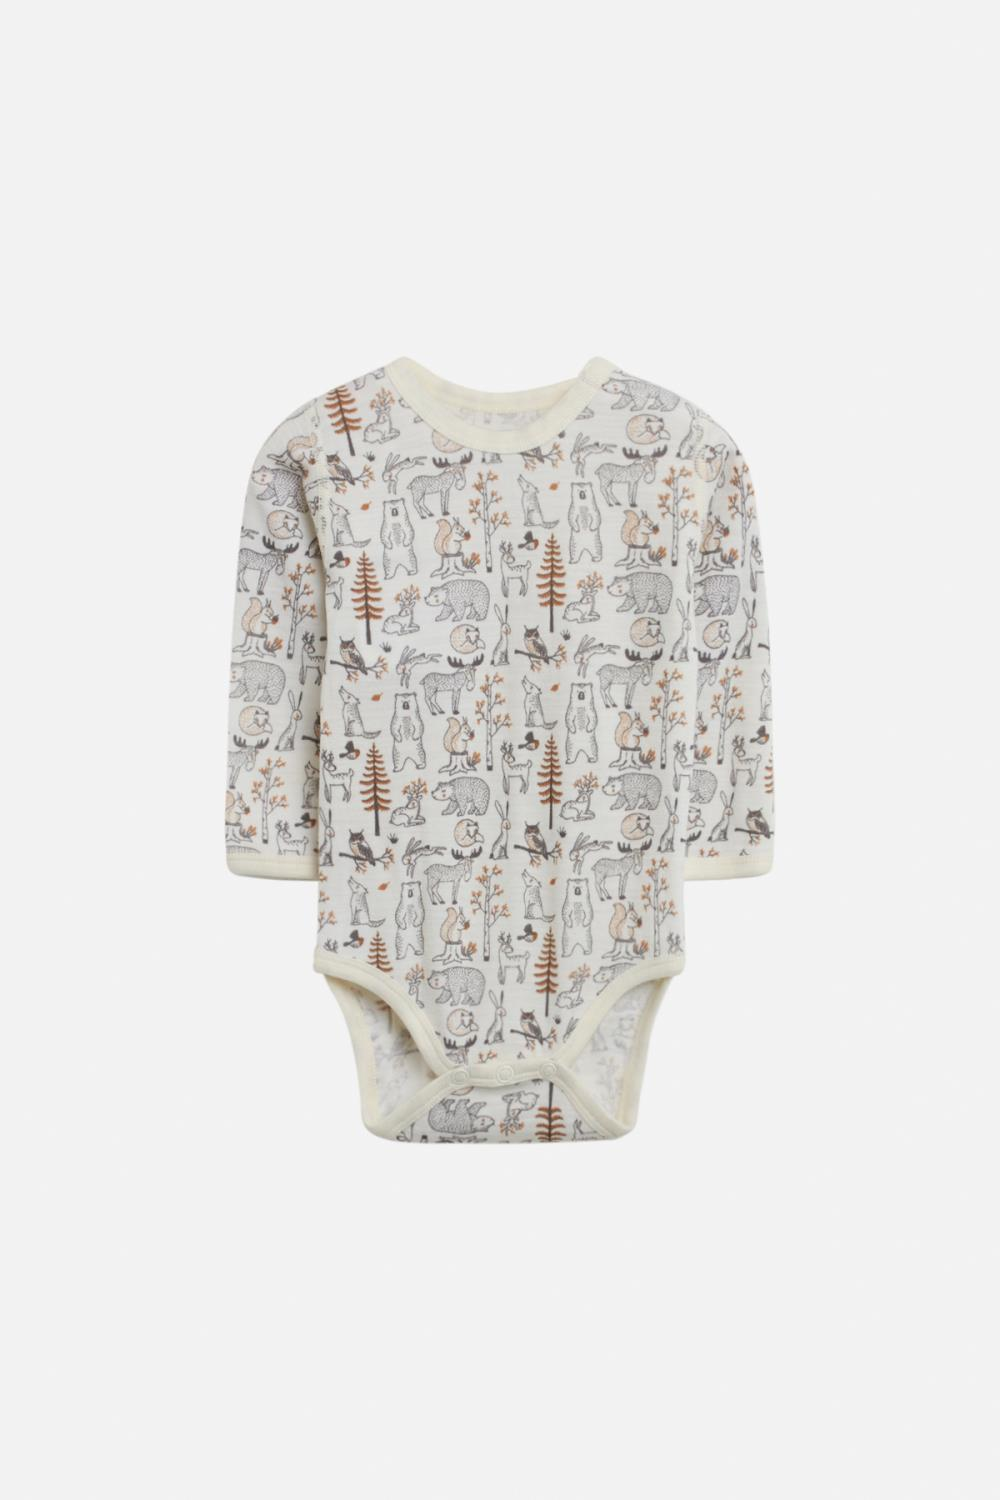 Hust and Claire - AW 20 Body Bo skog i merionoull, offwhite